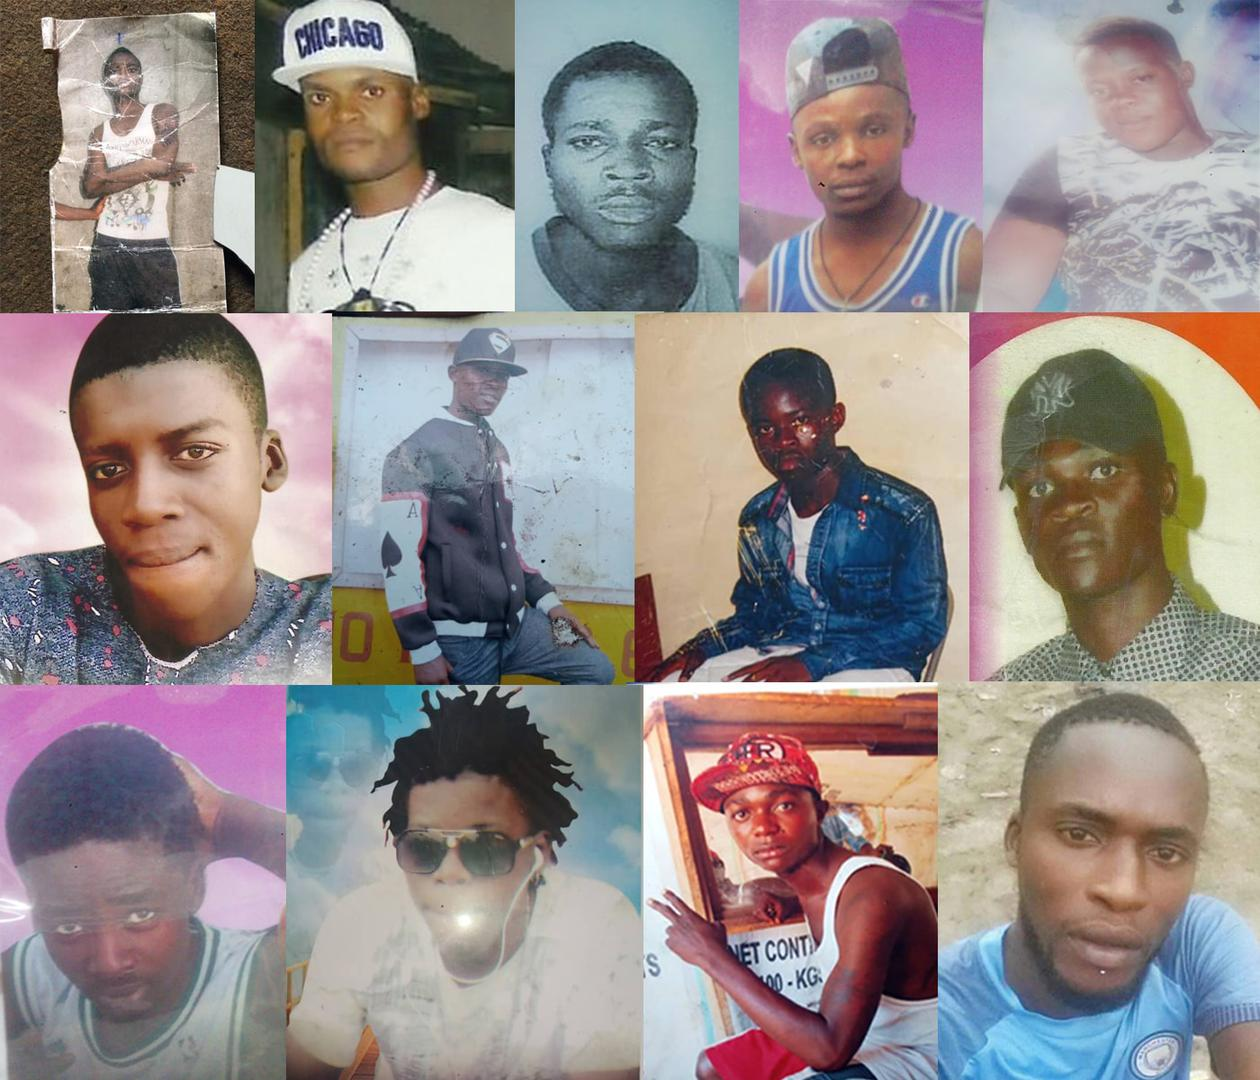 Security forces in the Democratic Republic of Congo summarily killed at least 27 young men and boys and forcibly disappeared 7 others during an anti-crime campaign that began in May 2018. Names of those pictured have been withheld because of security conc